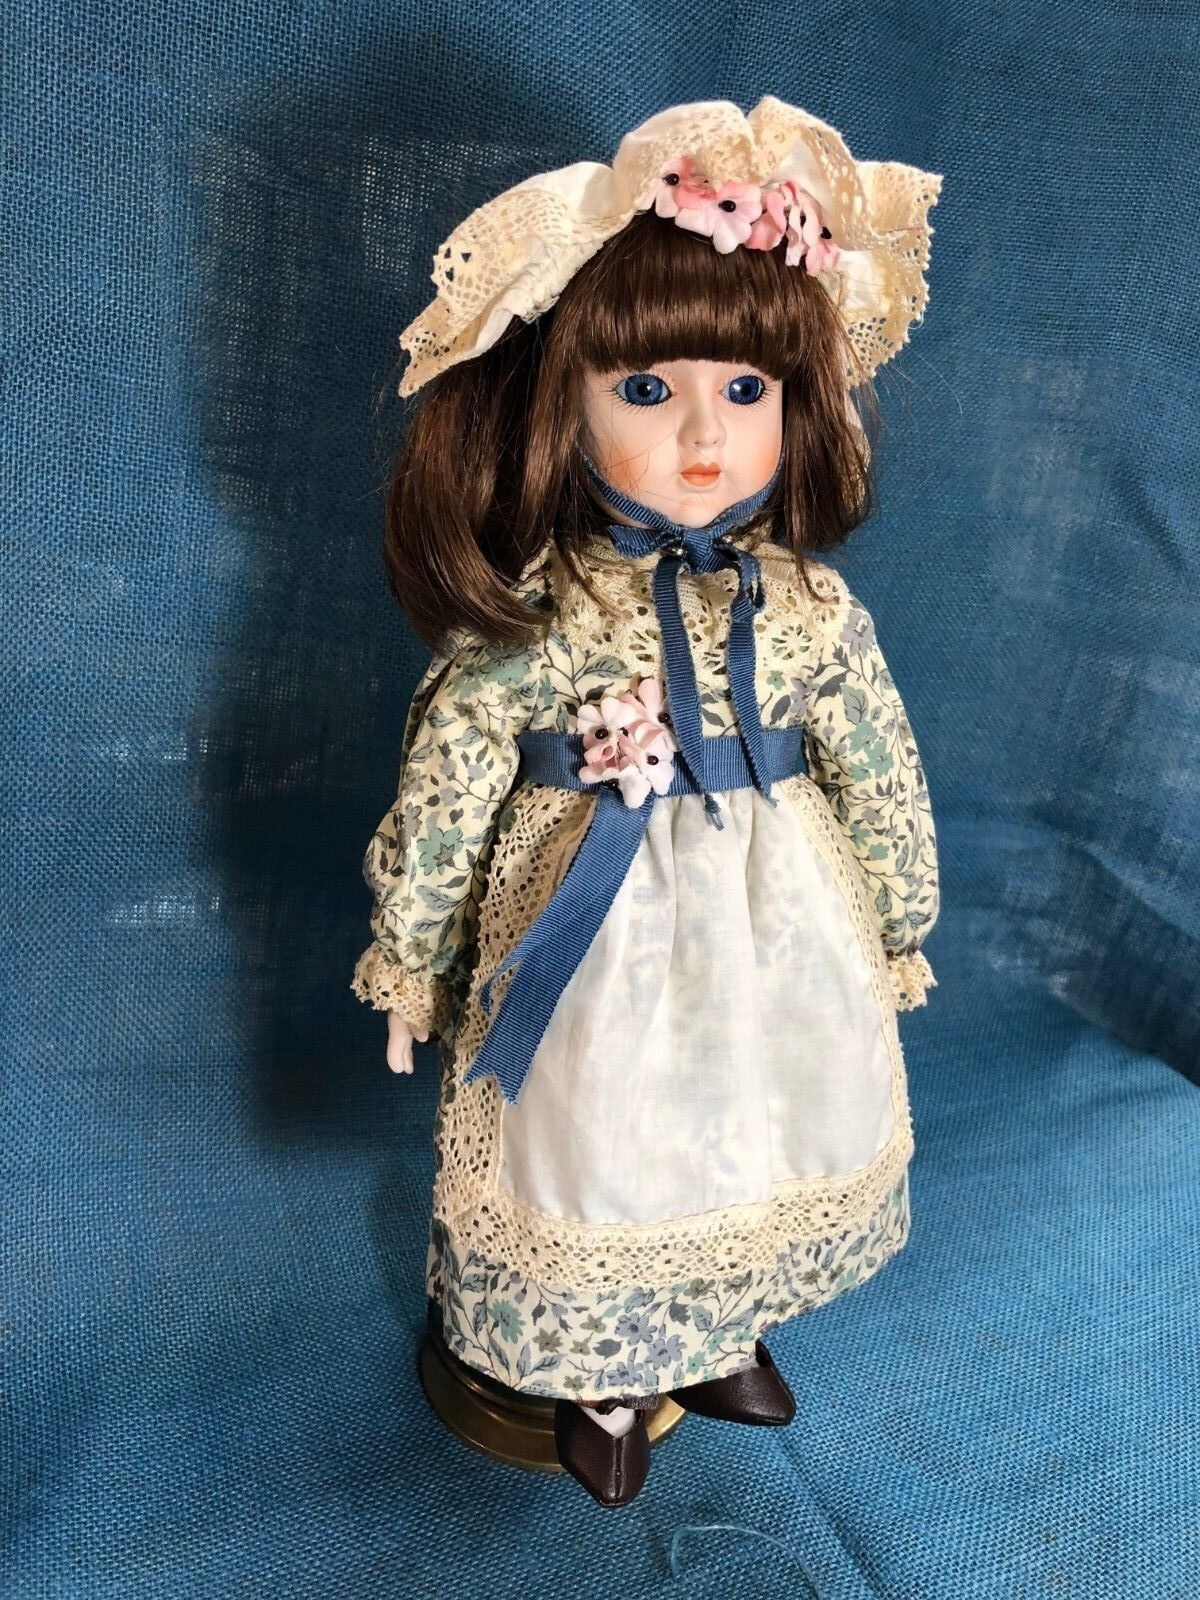 Gorham 1981 Porcelain Doll 14  Danielle  You Are My Sunshine  Missing Key